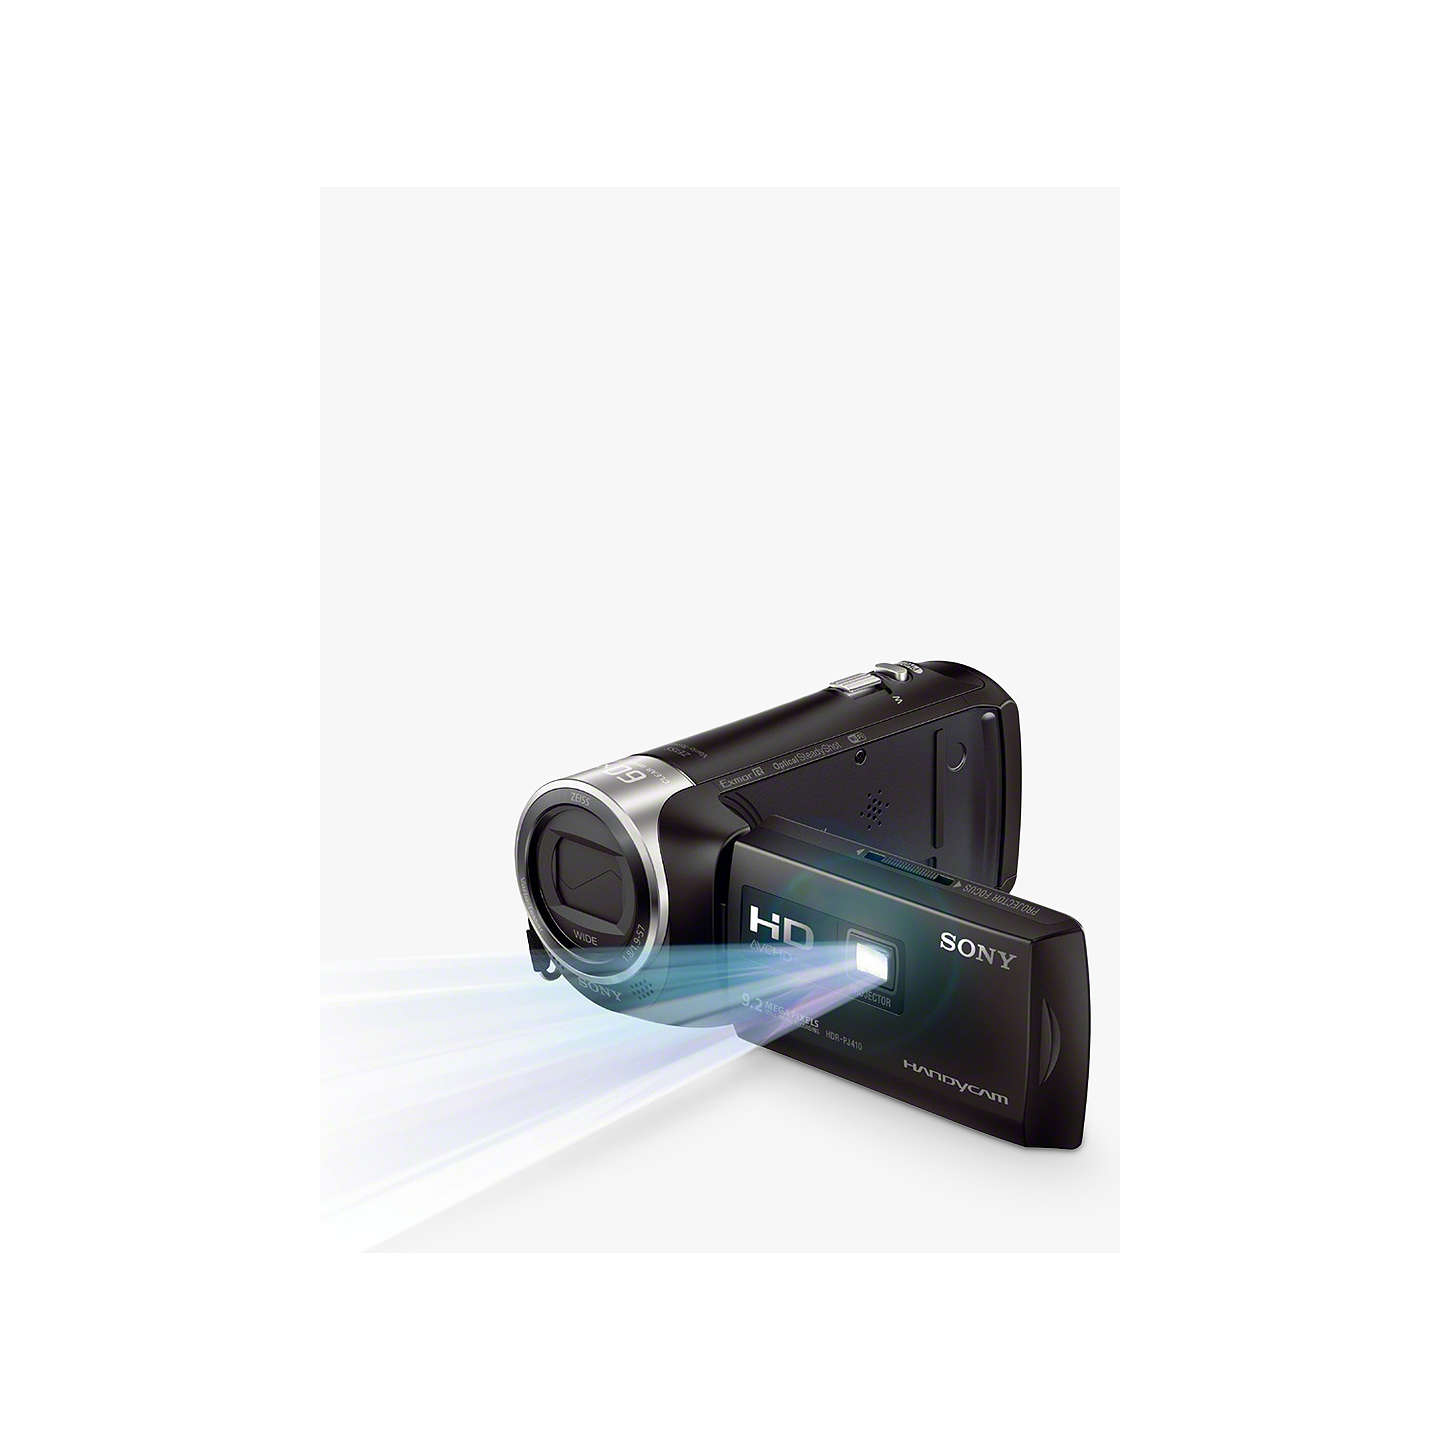 Sony Hd Handycam With Built In Projector Hdr Pj675 Full Camcorder Pal Pj410 1080p 2